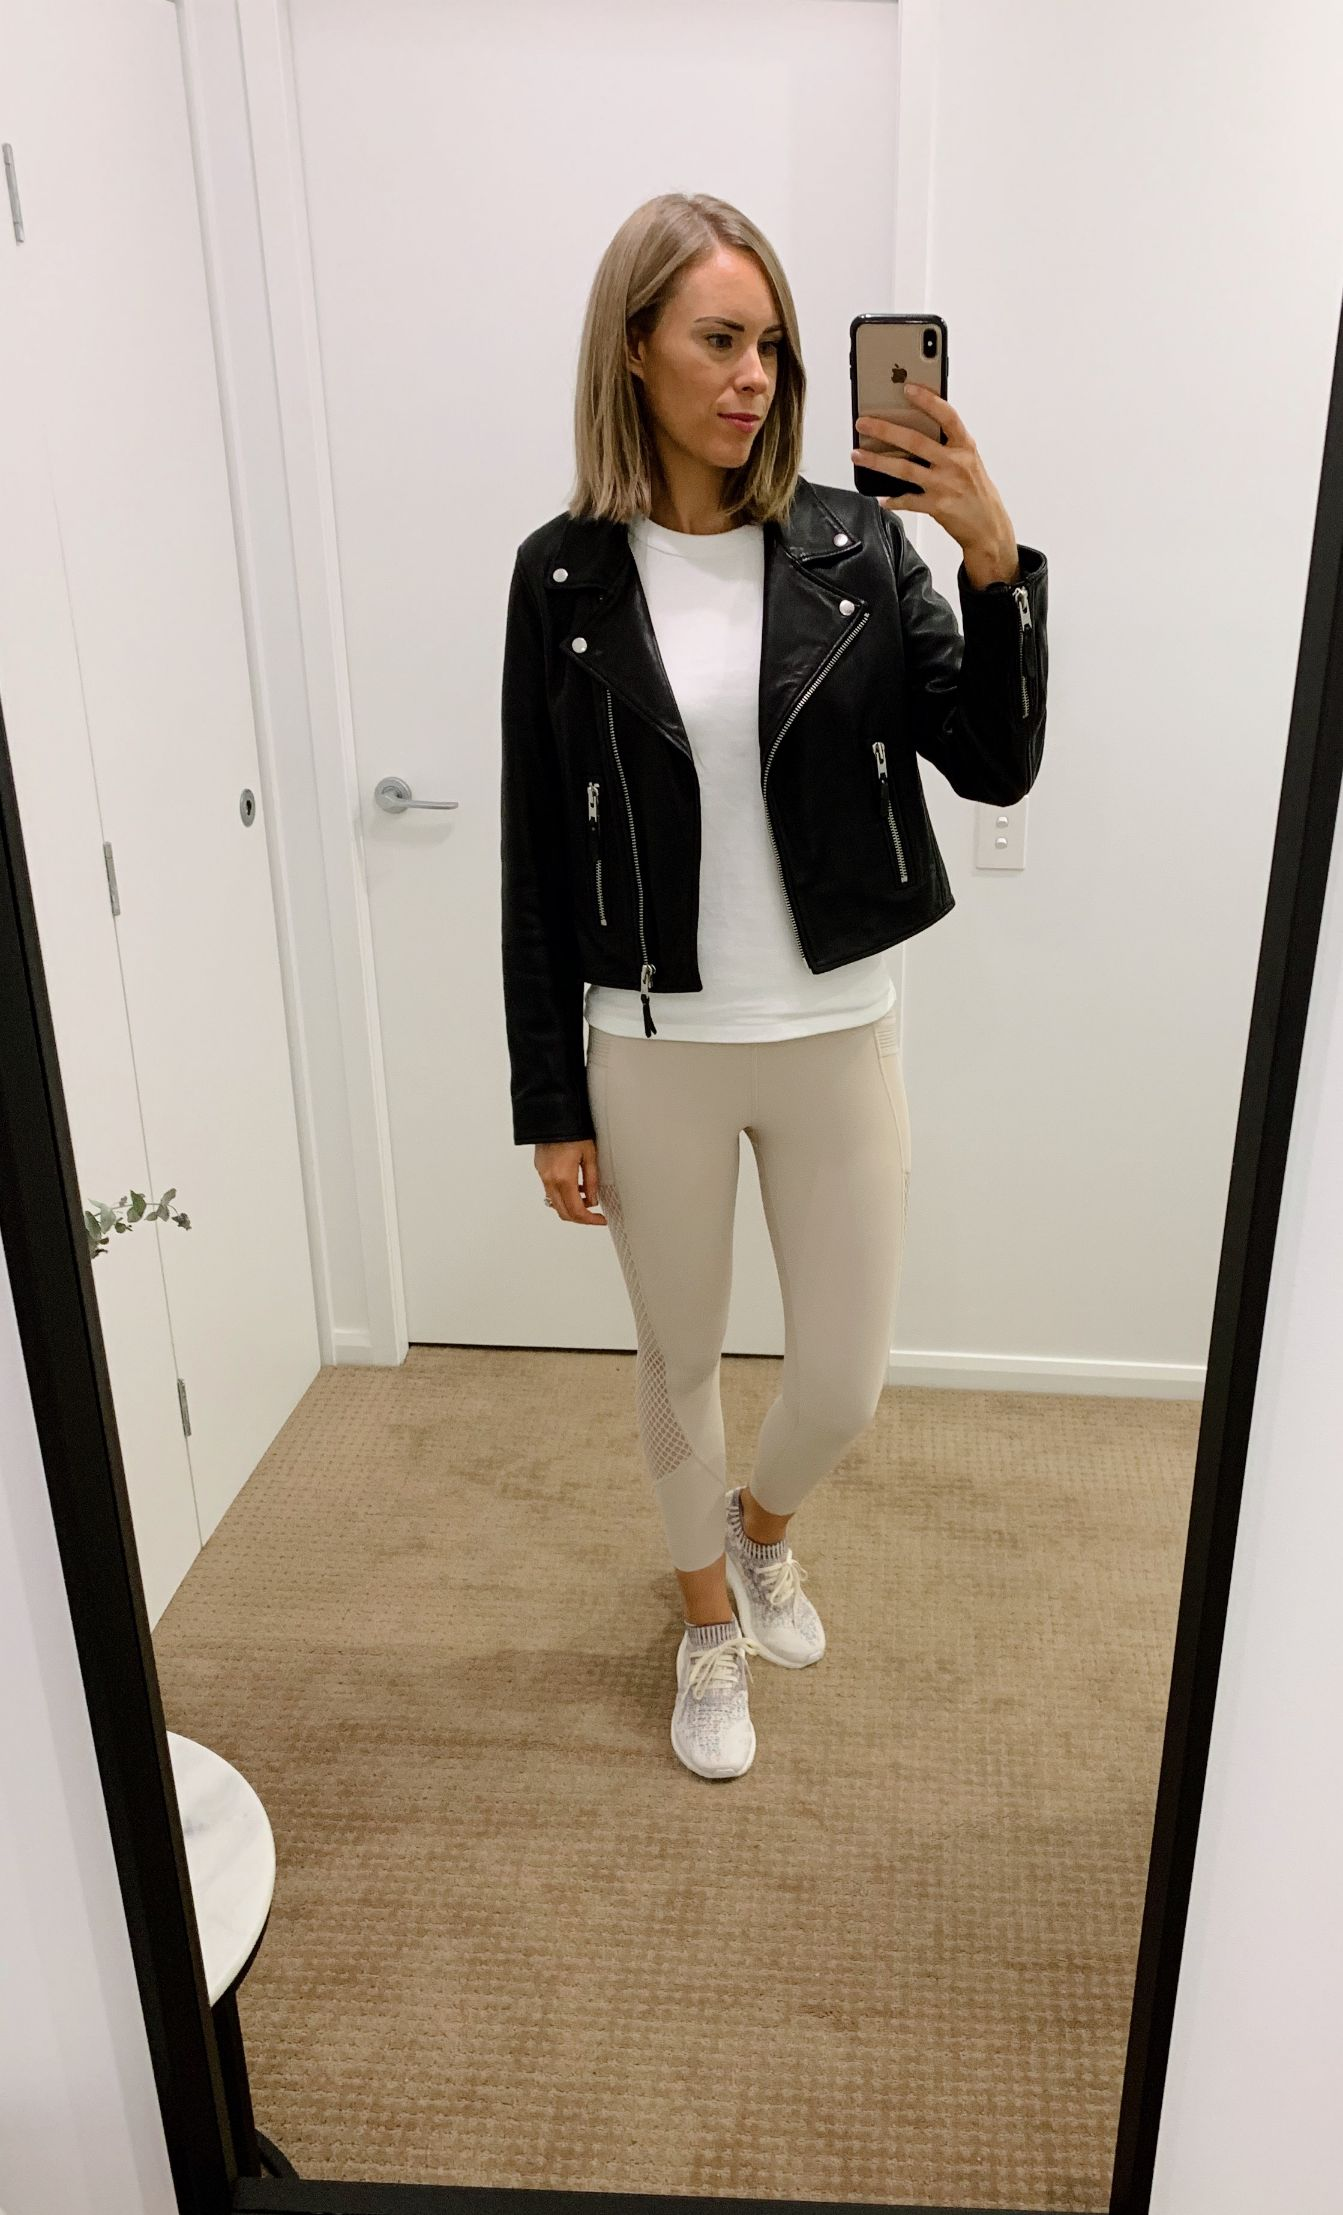 athleisure outfit ideas pinterest fashion blogger style neutral athletic wear workout everyday outfits errands black leather biker jacket white tee and leggings 1